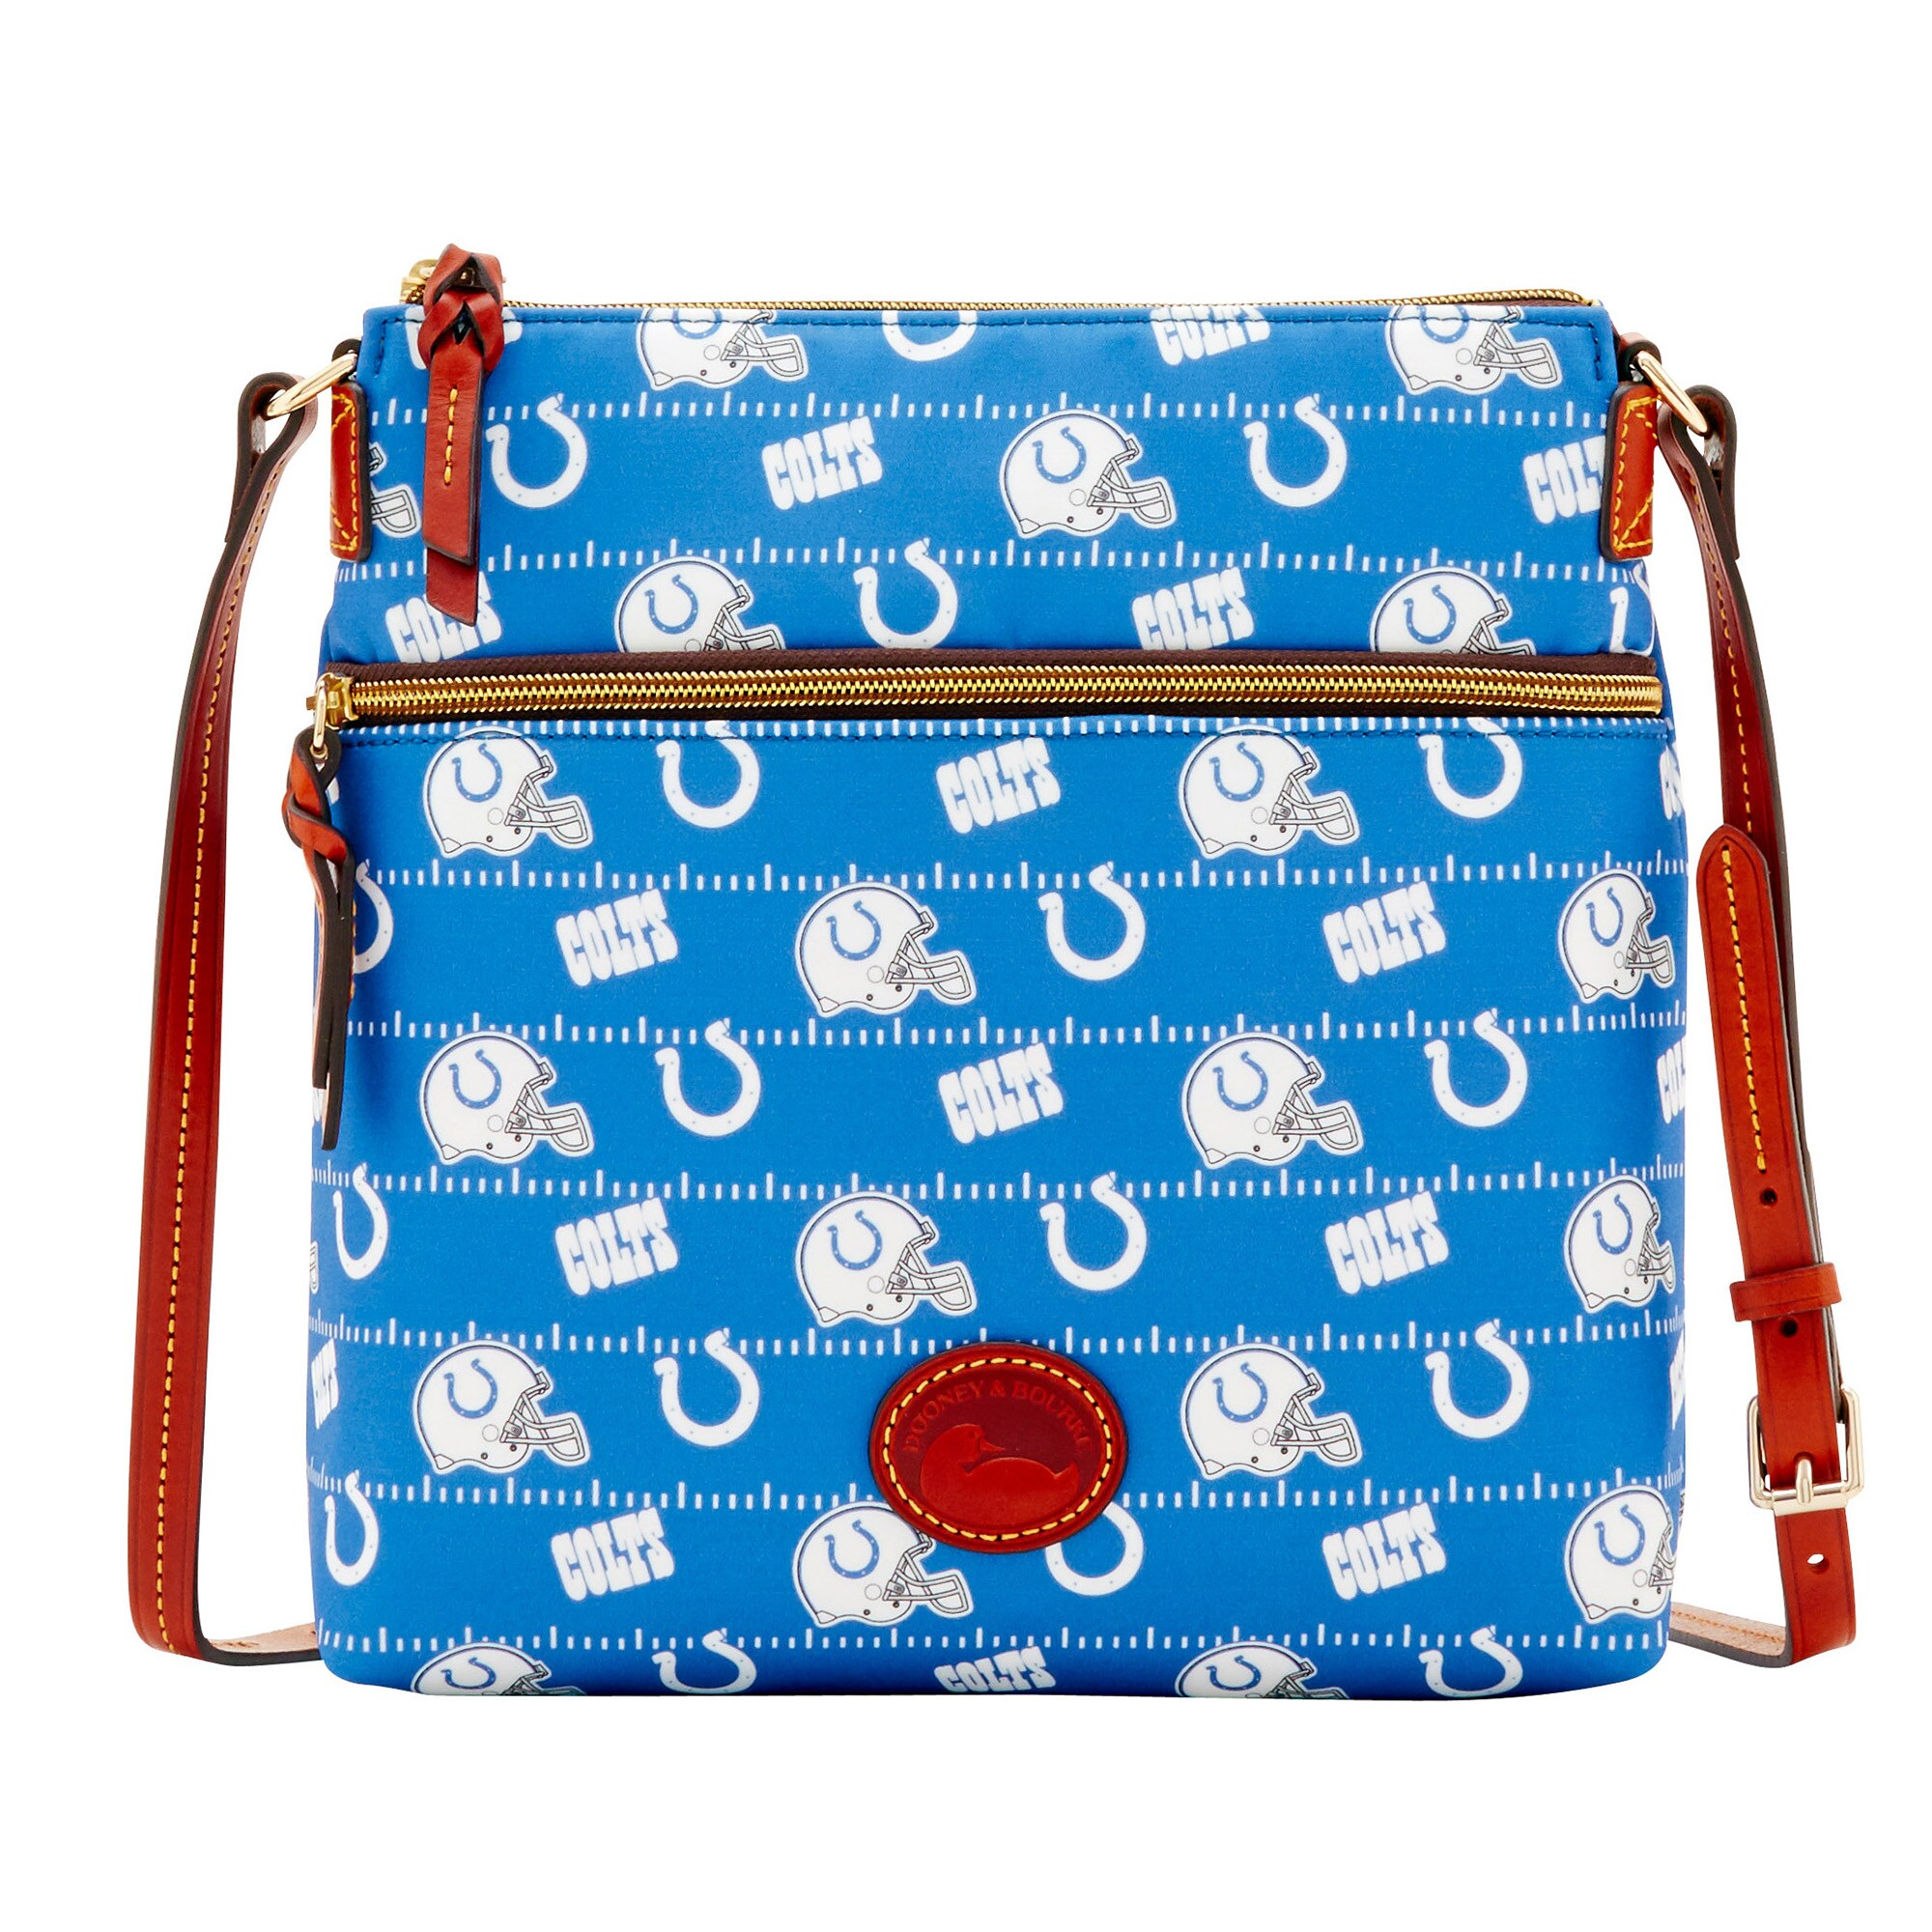 Indianapolis Colts Dooney & Bourke Women's Team Color Nylon Crossbody Purse - Royal